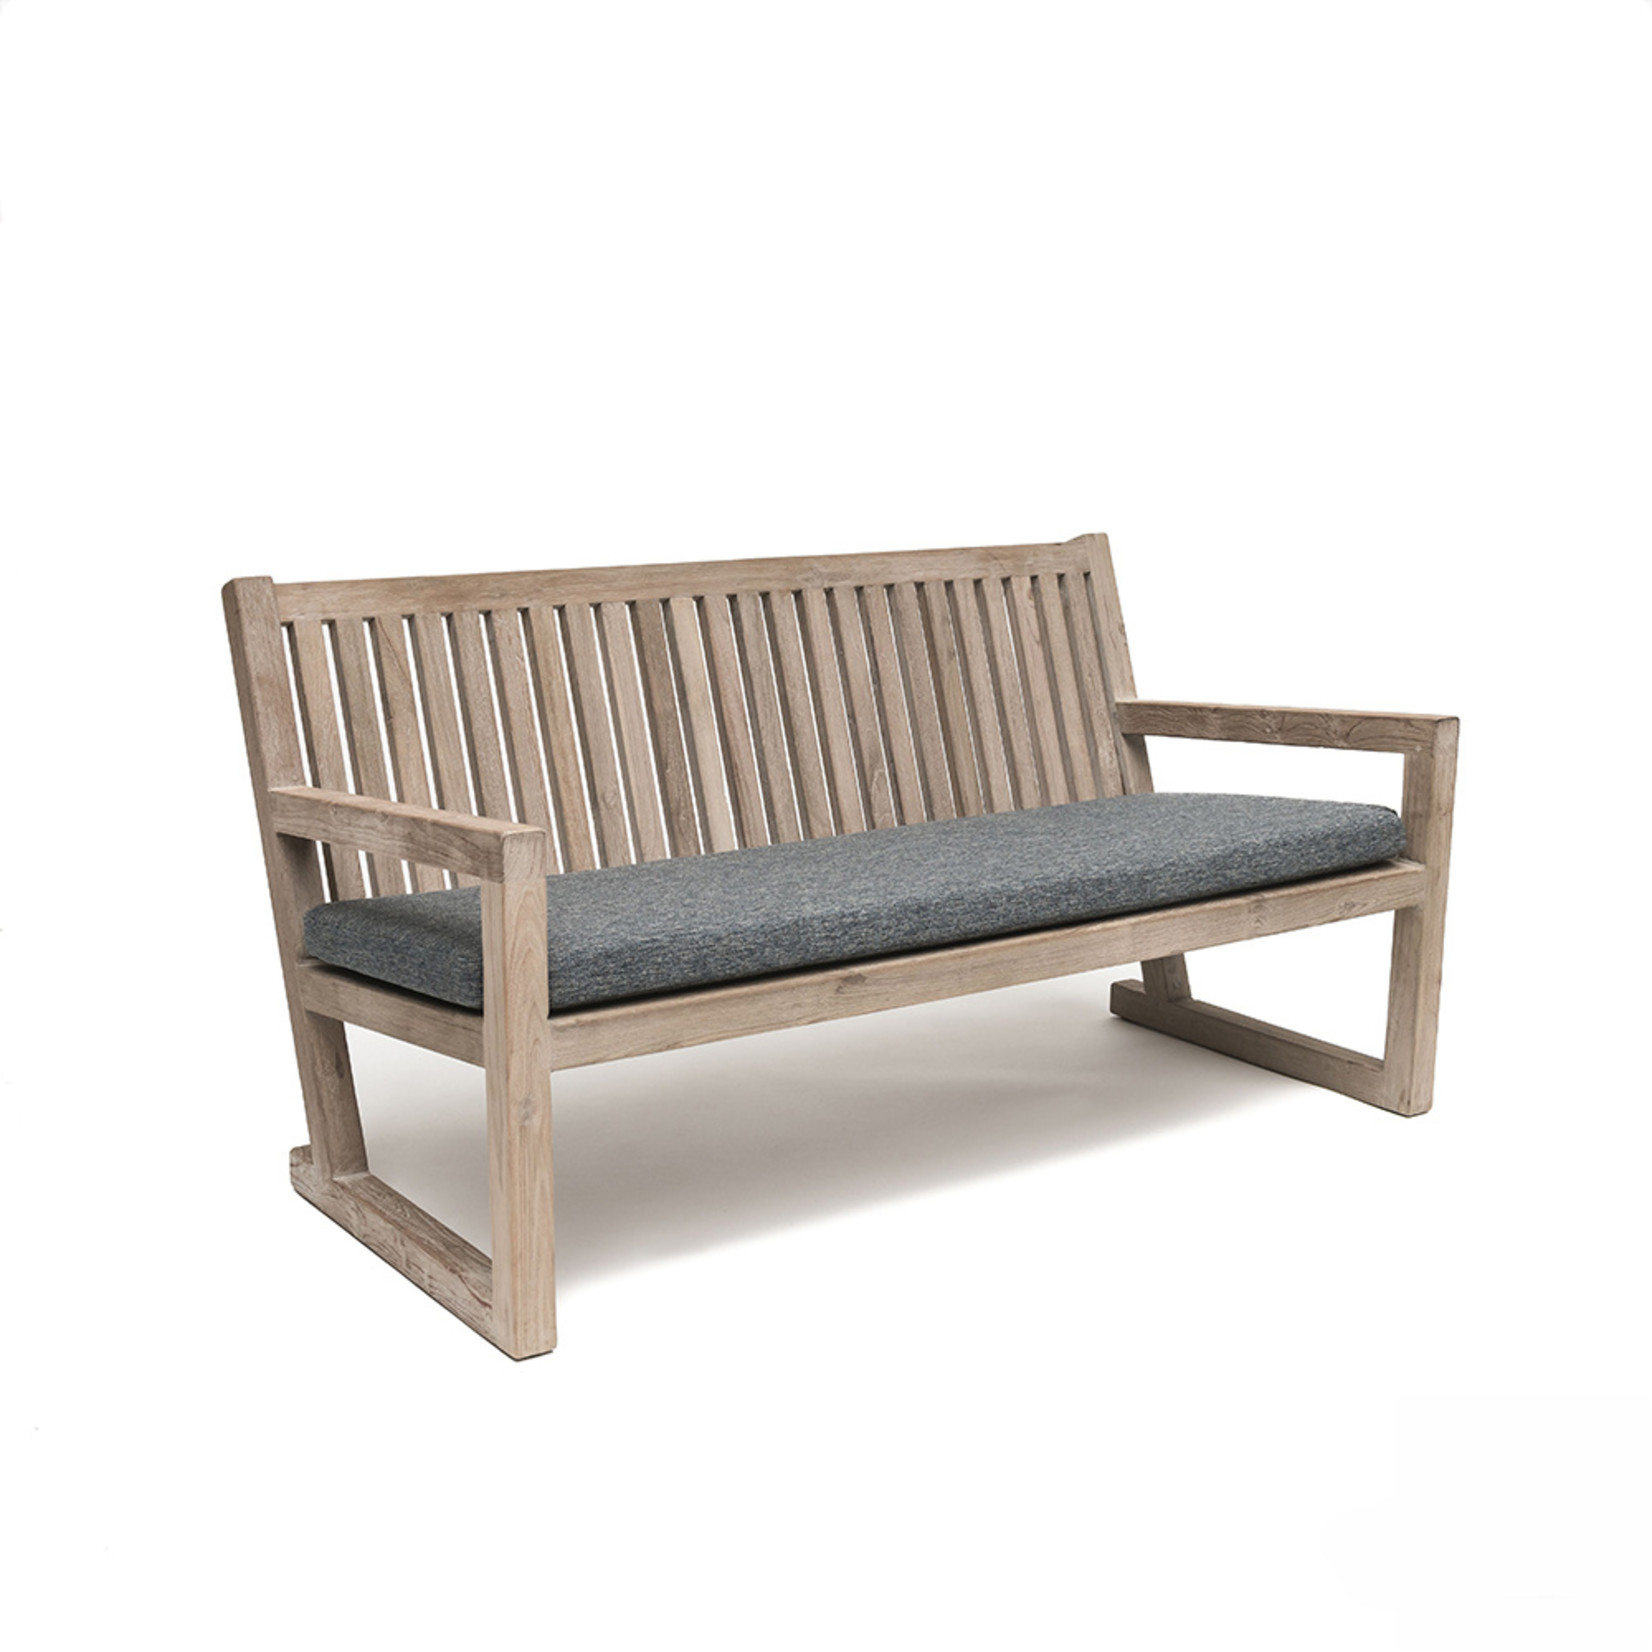 Gommaire Bench Alan | Reclaimed Teak Natural Gray + Cushion